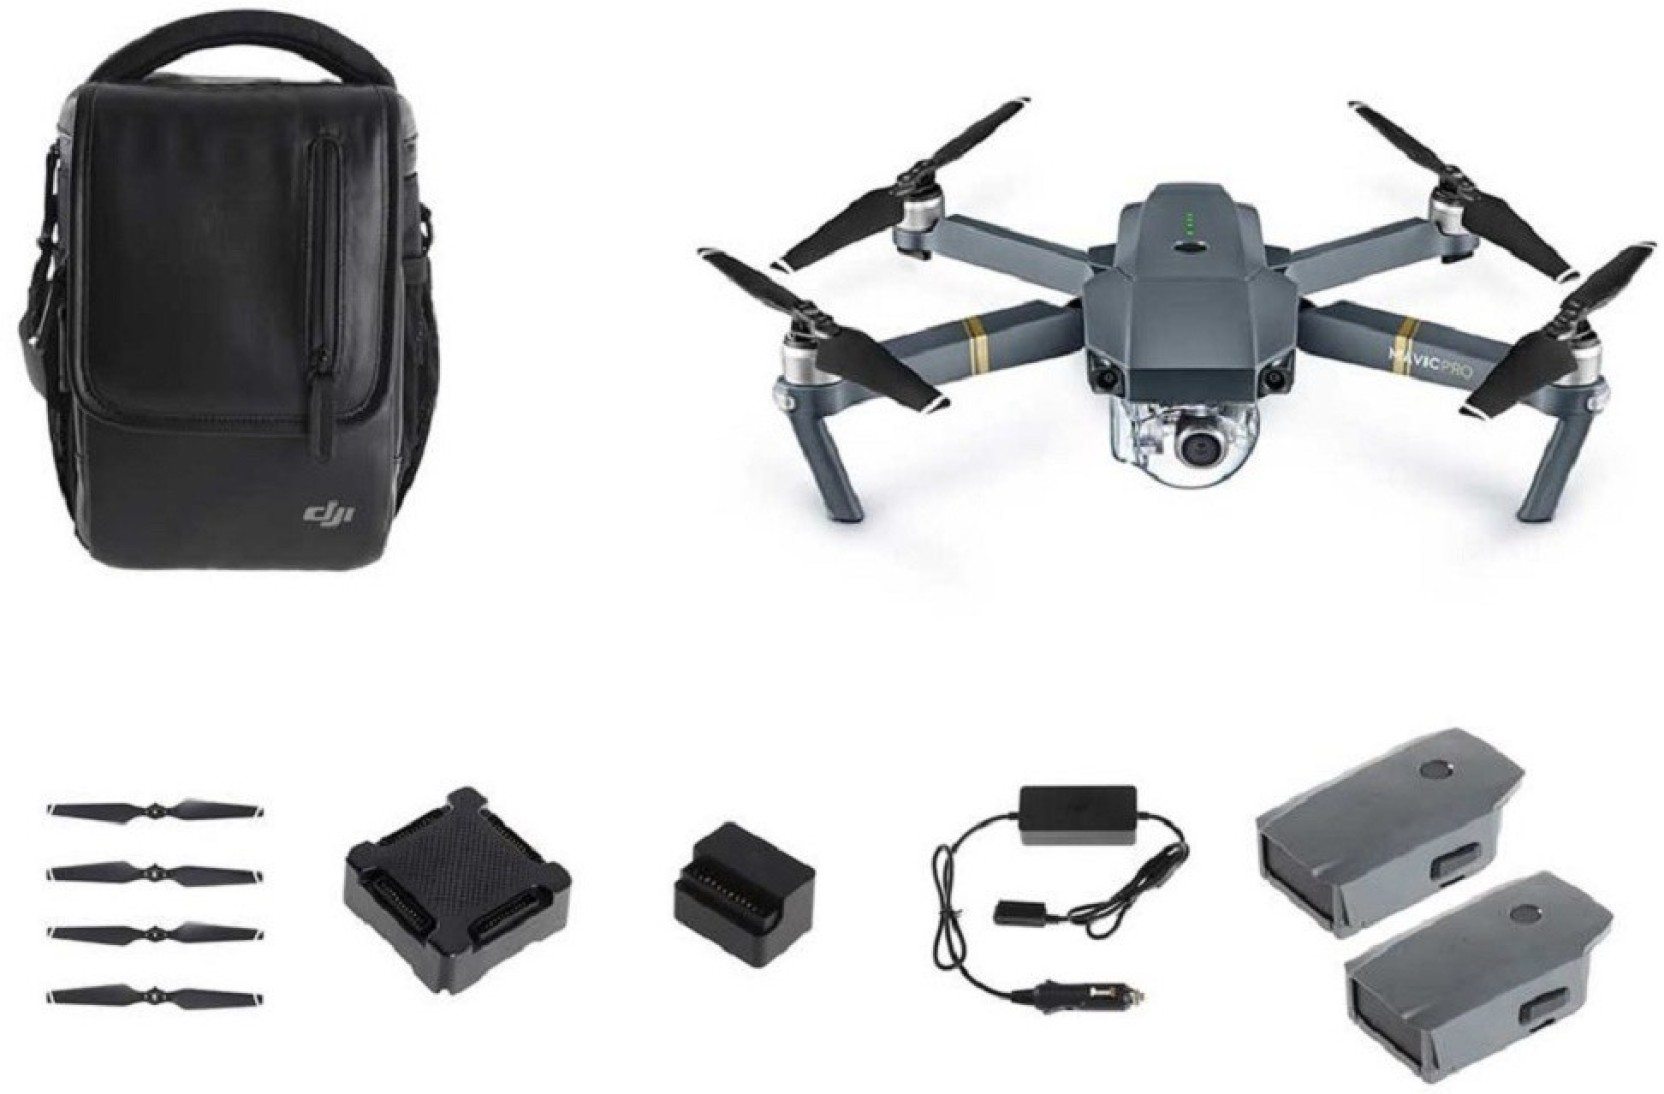 Dji Mavic Pro With Fly More Combo Mavic Pro With Fly More Combo  # Fly Meubles Audio Bois